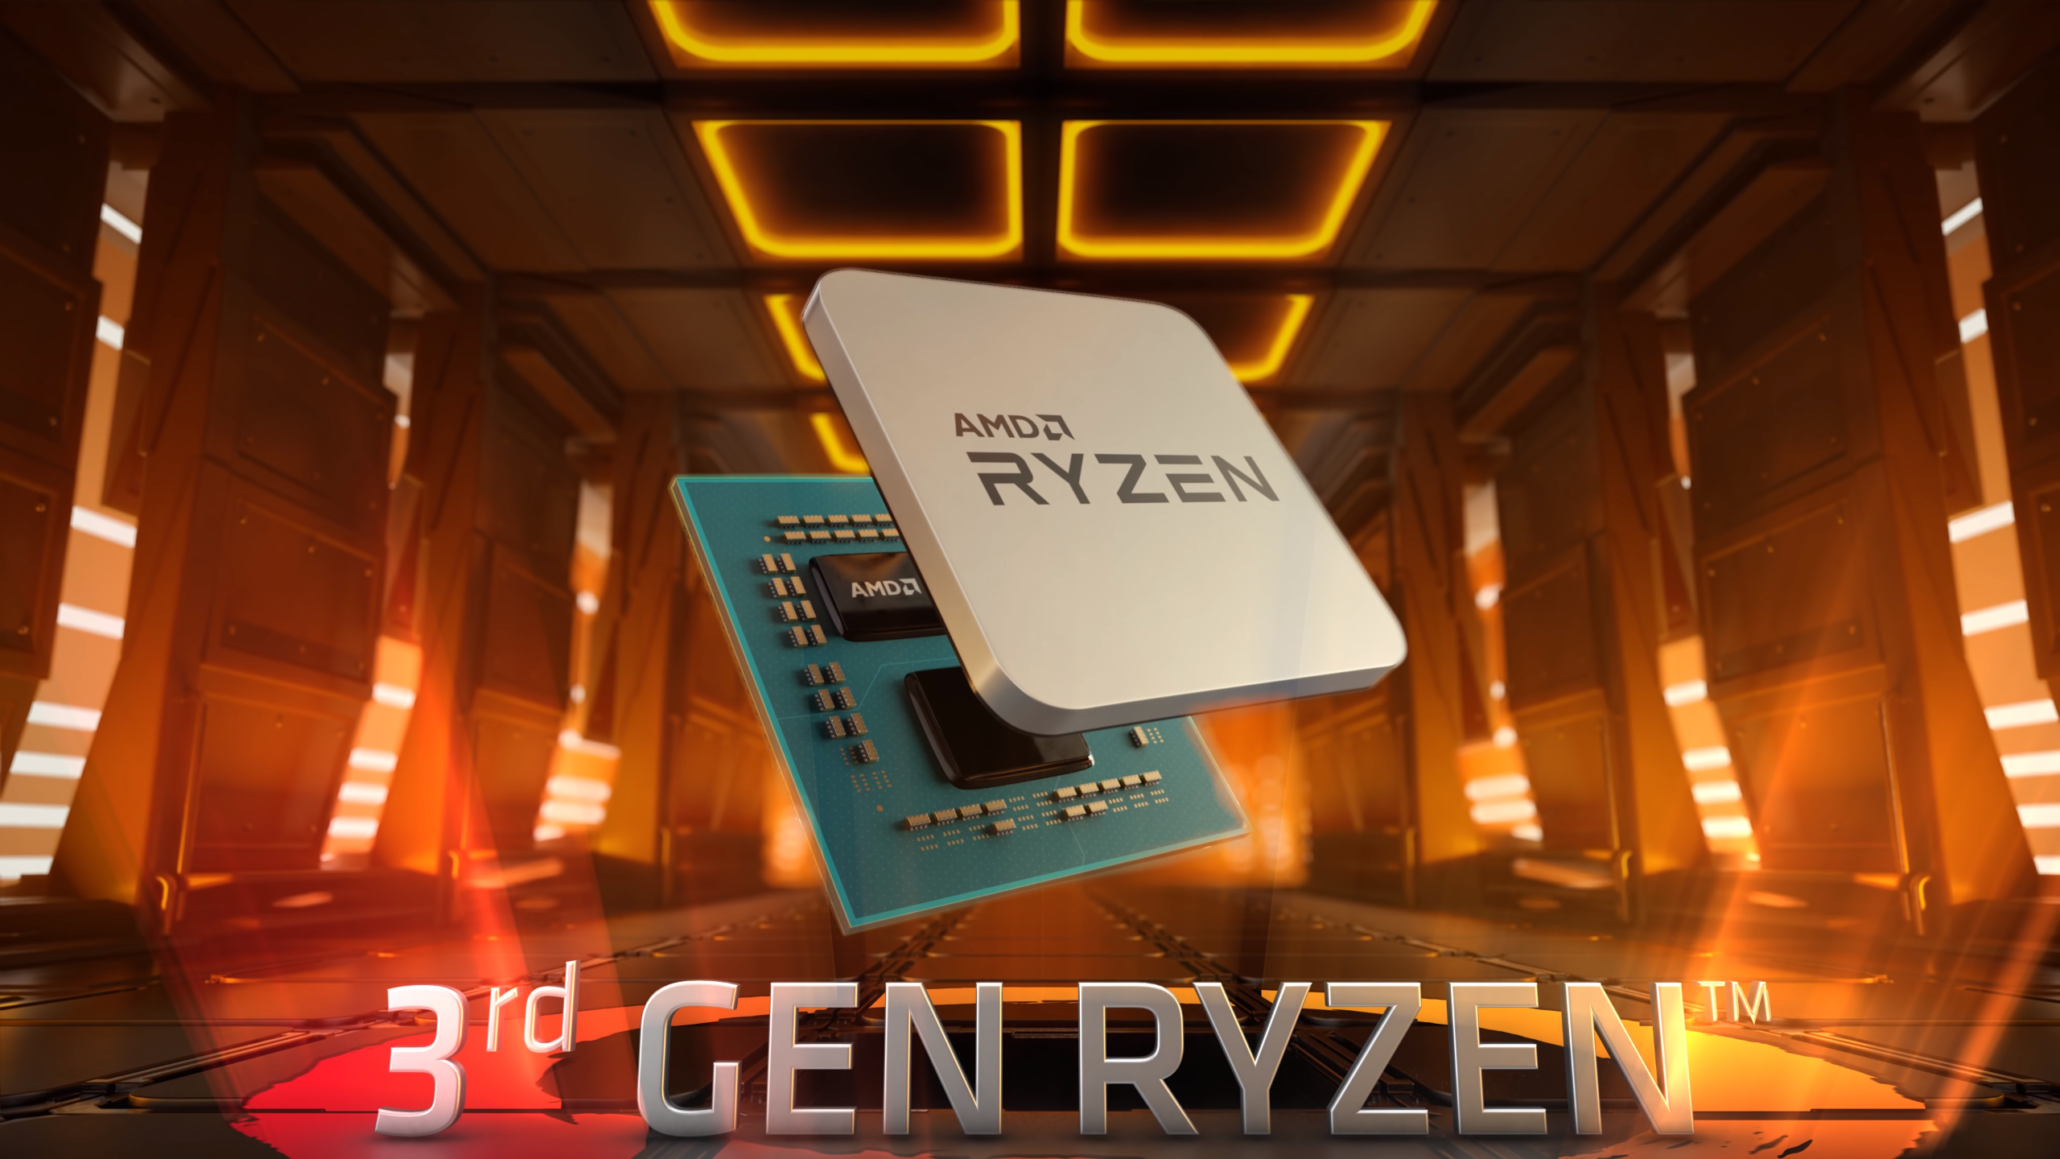 Amd Ryzen 9 3900x 12 Core Ryzen 7 3700x 8 Core Cpu Review Leak